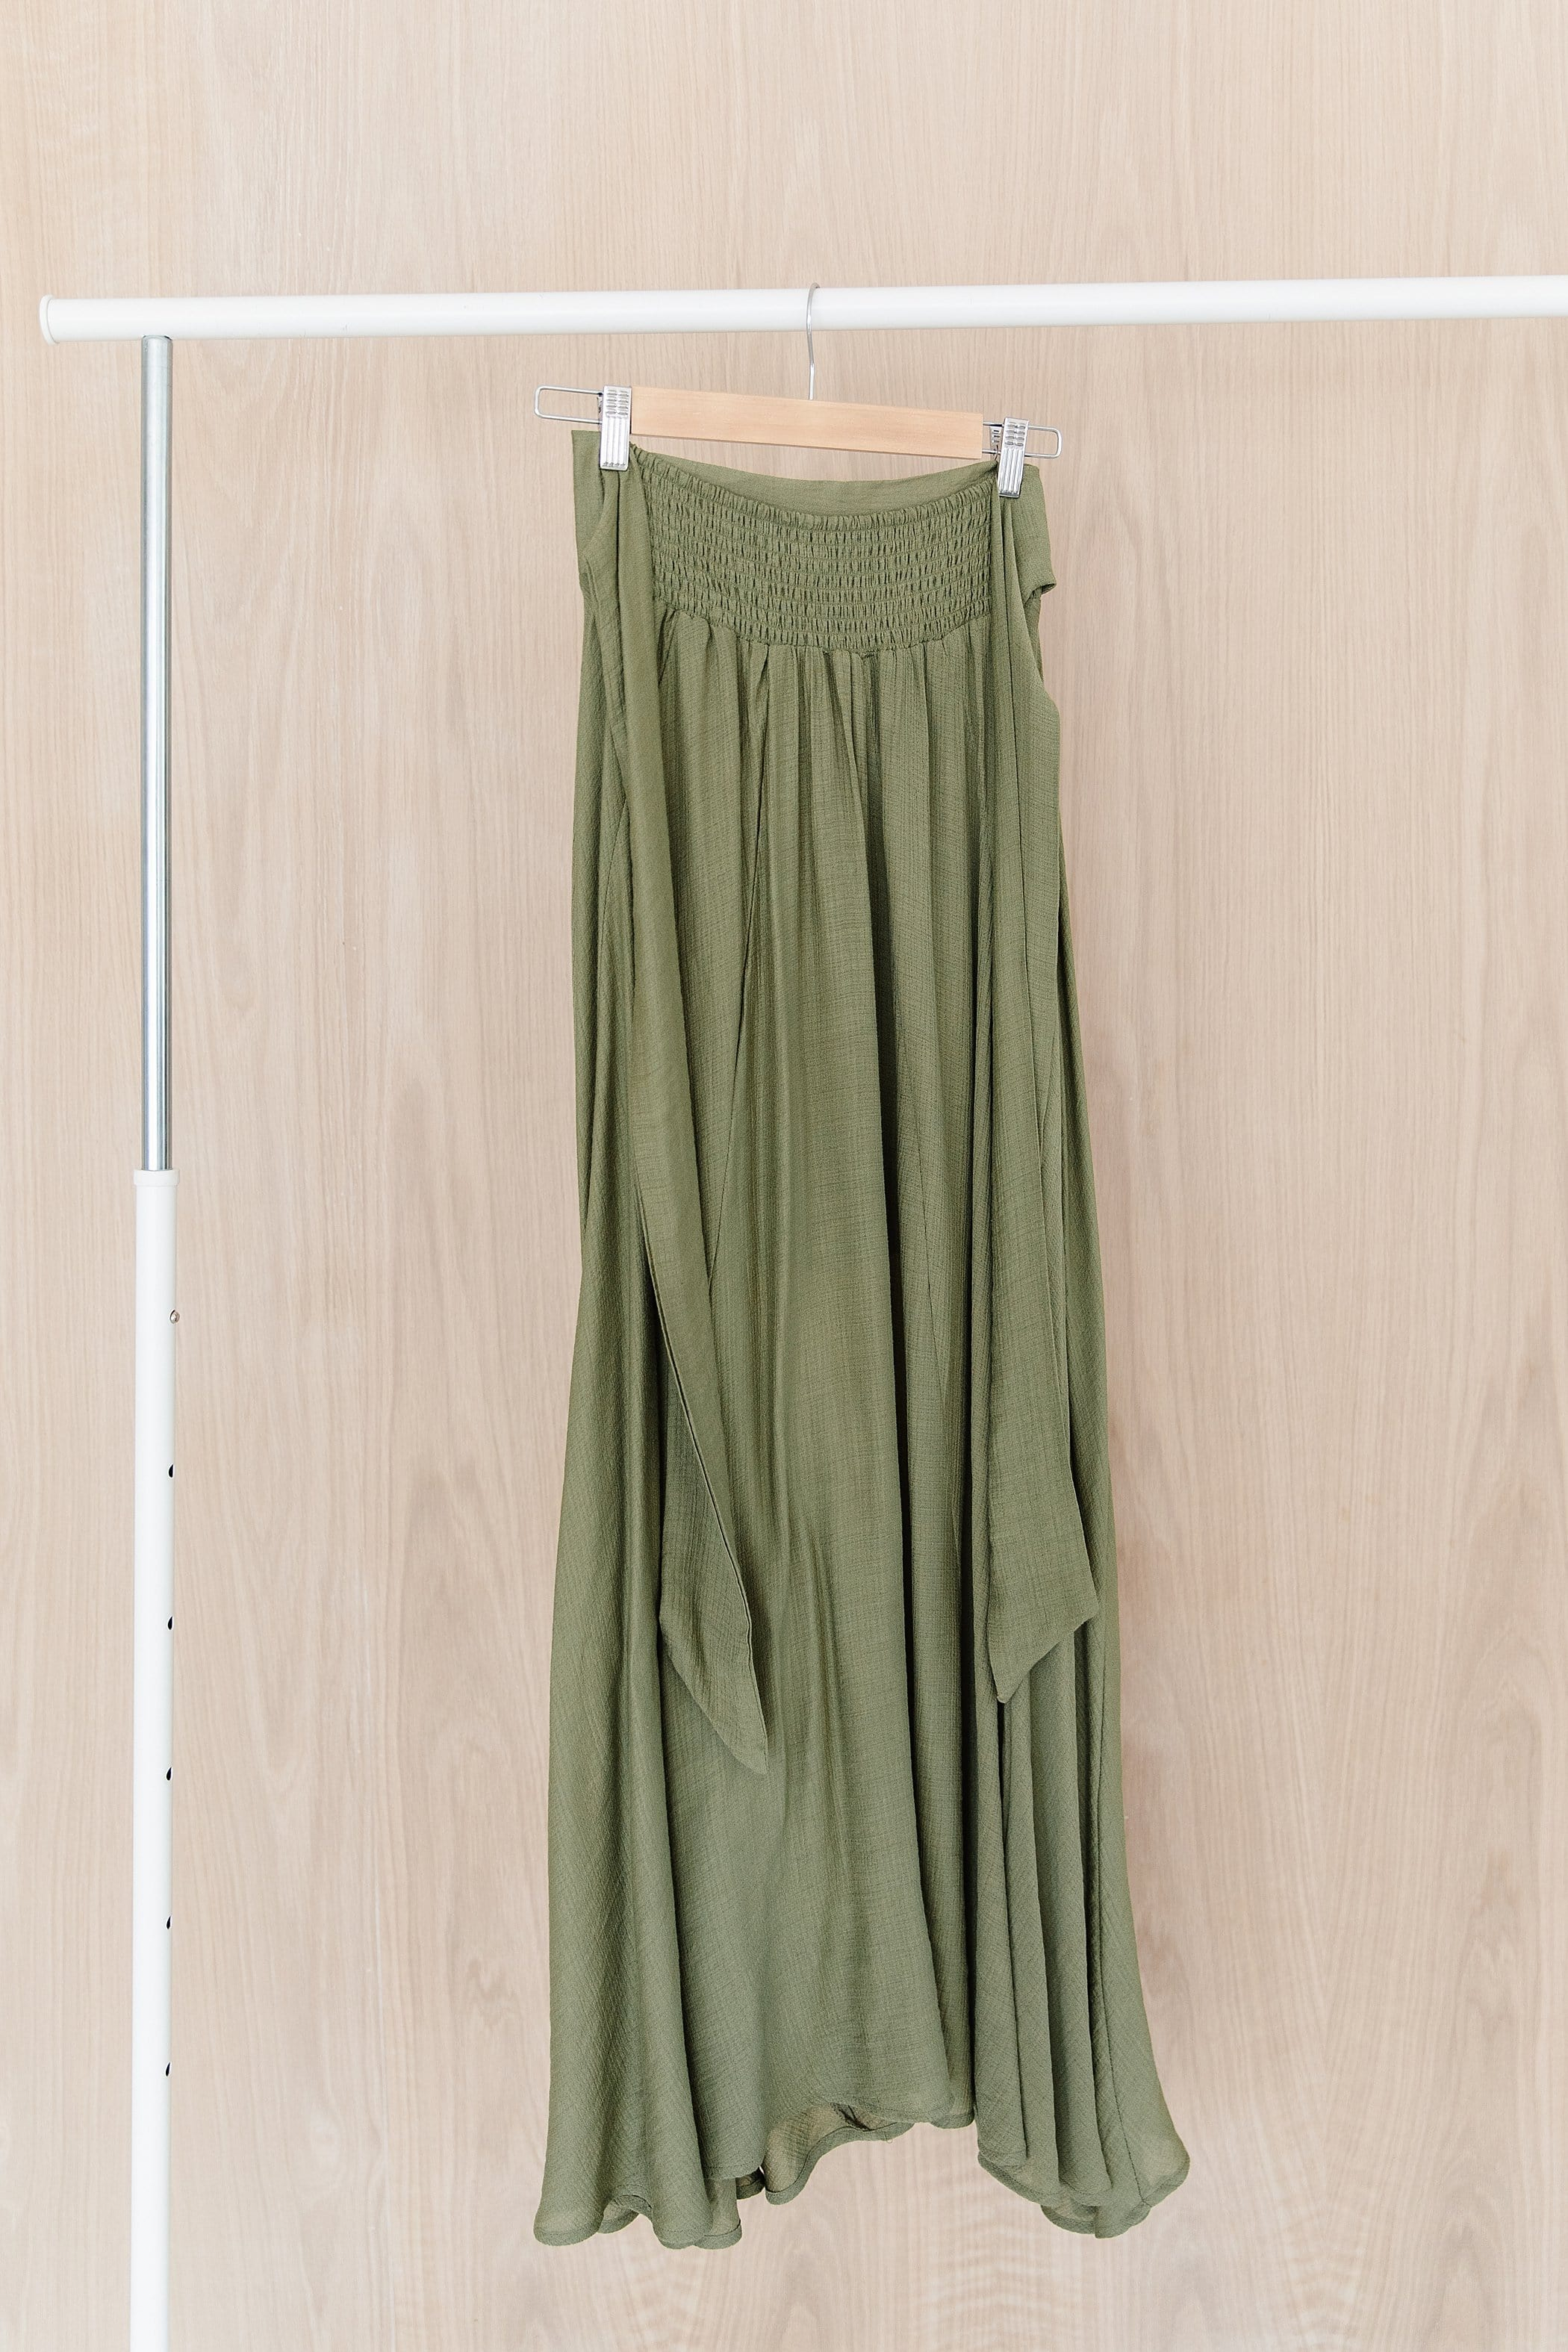 The Loren Tie Front Maxi Skirt in Black and Moss